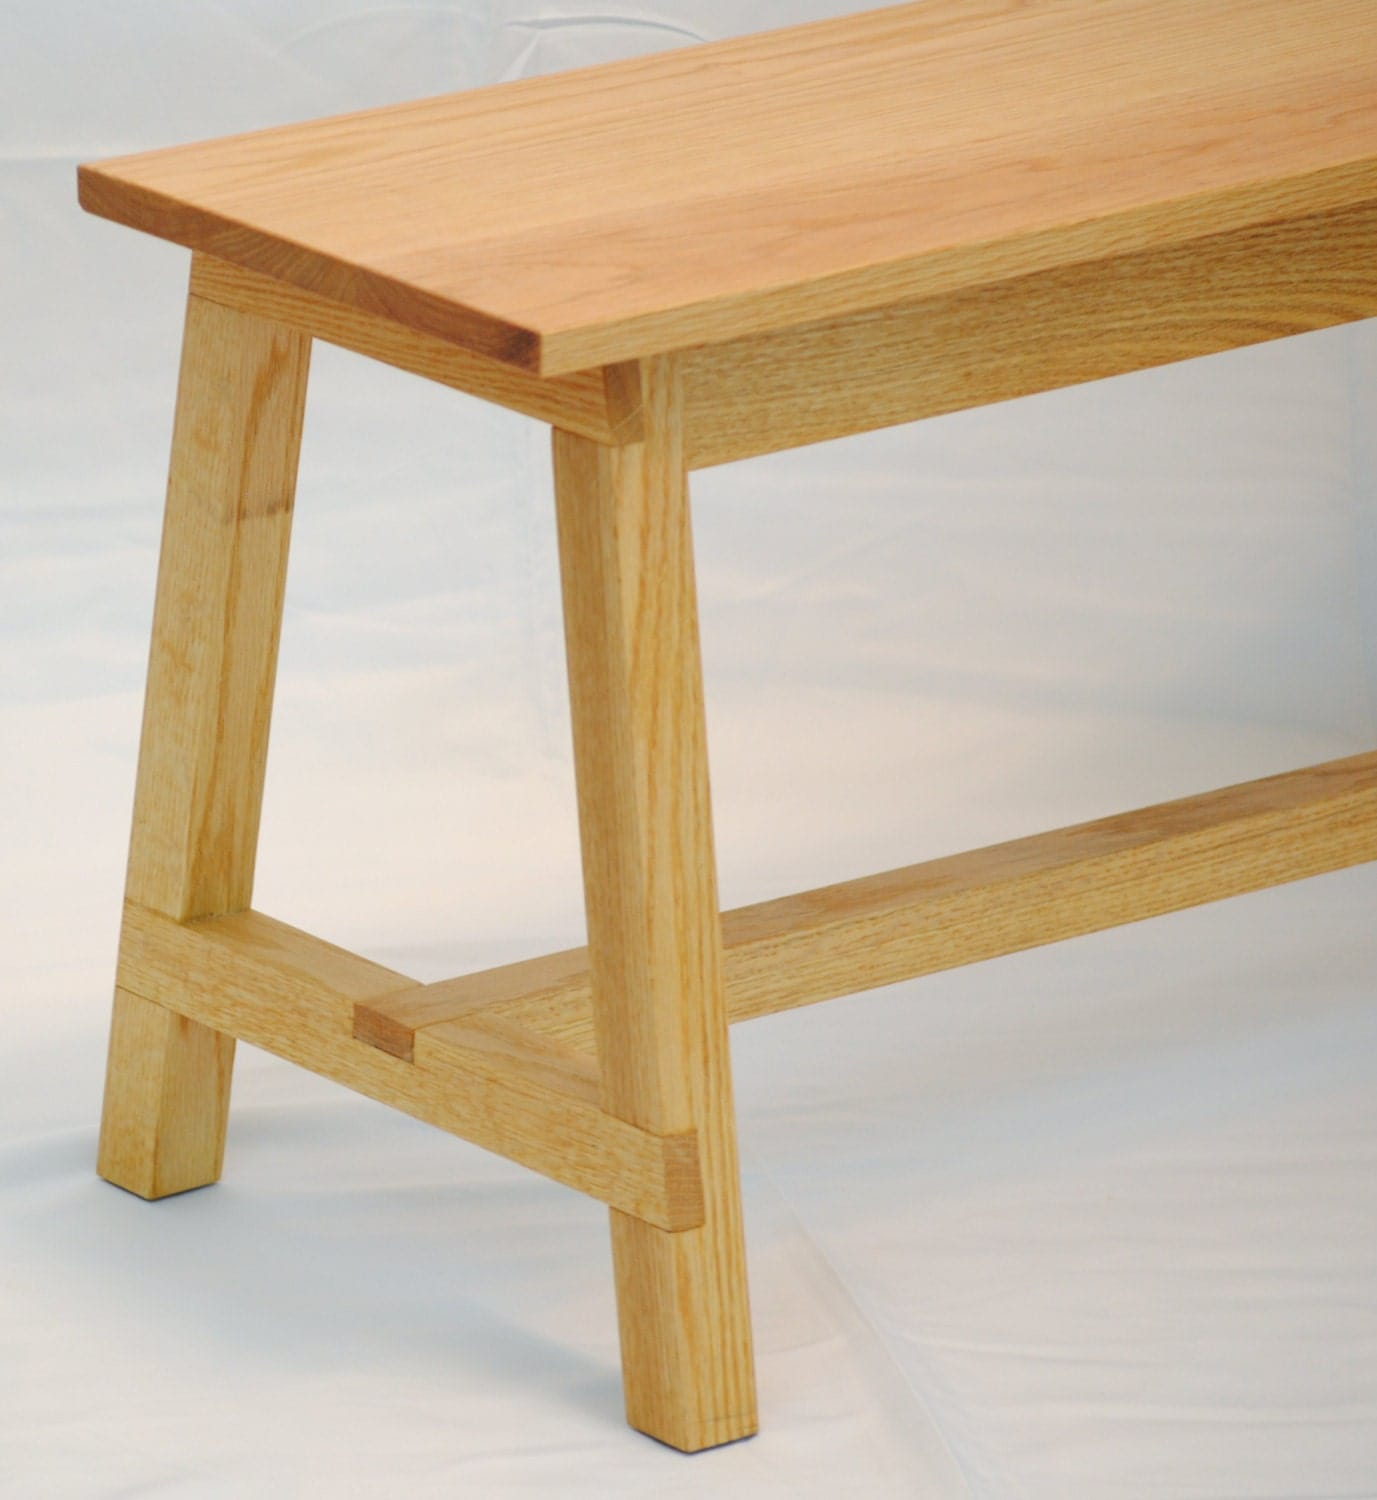 Used Foyer Bench : Oak bench used as an entryway around the kitchen